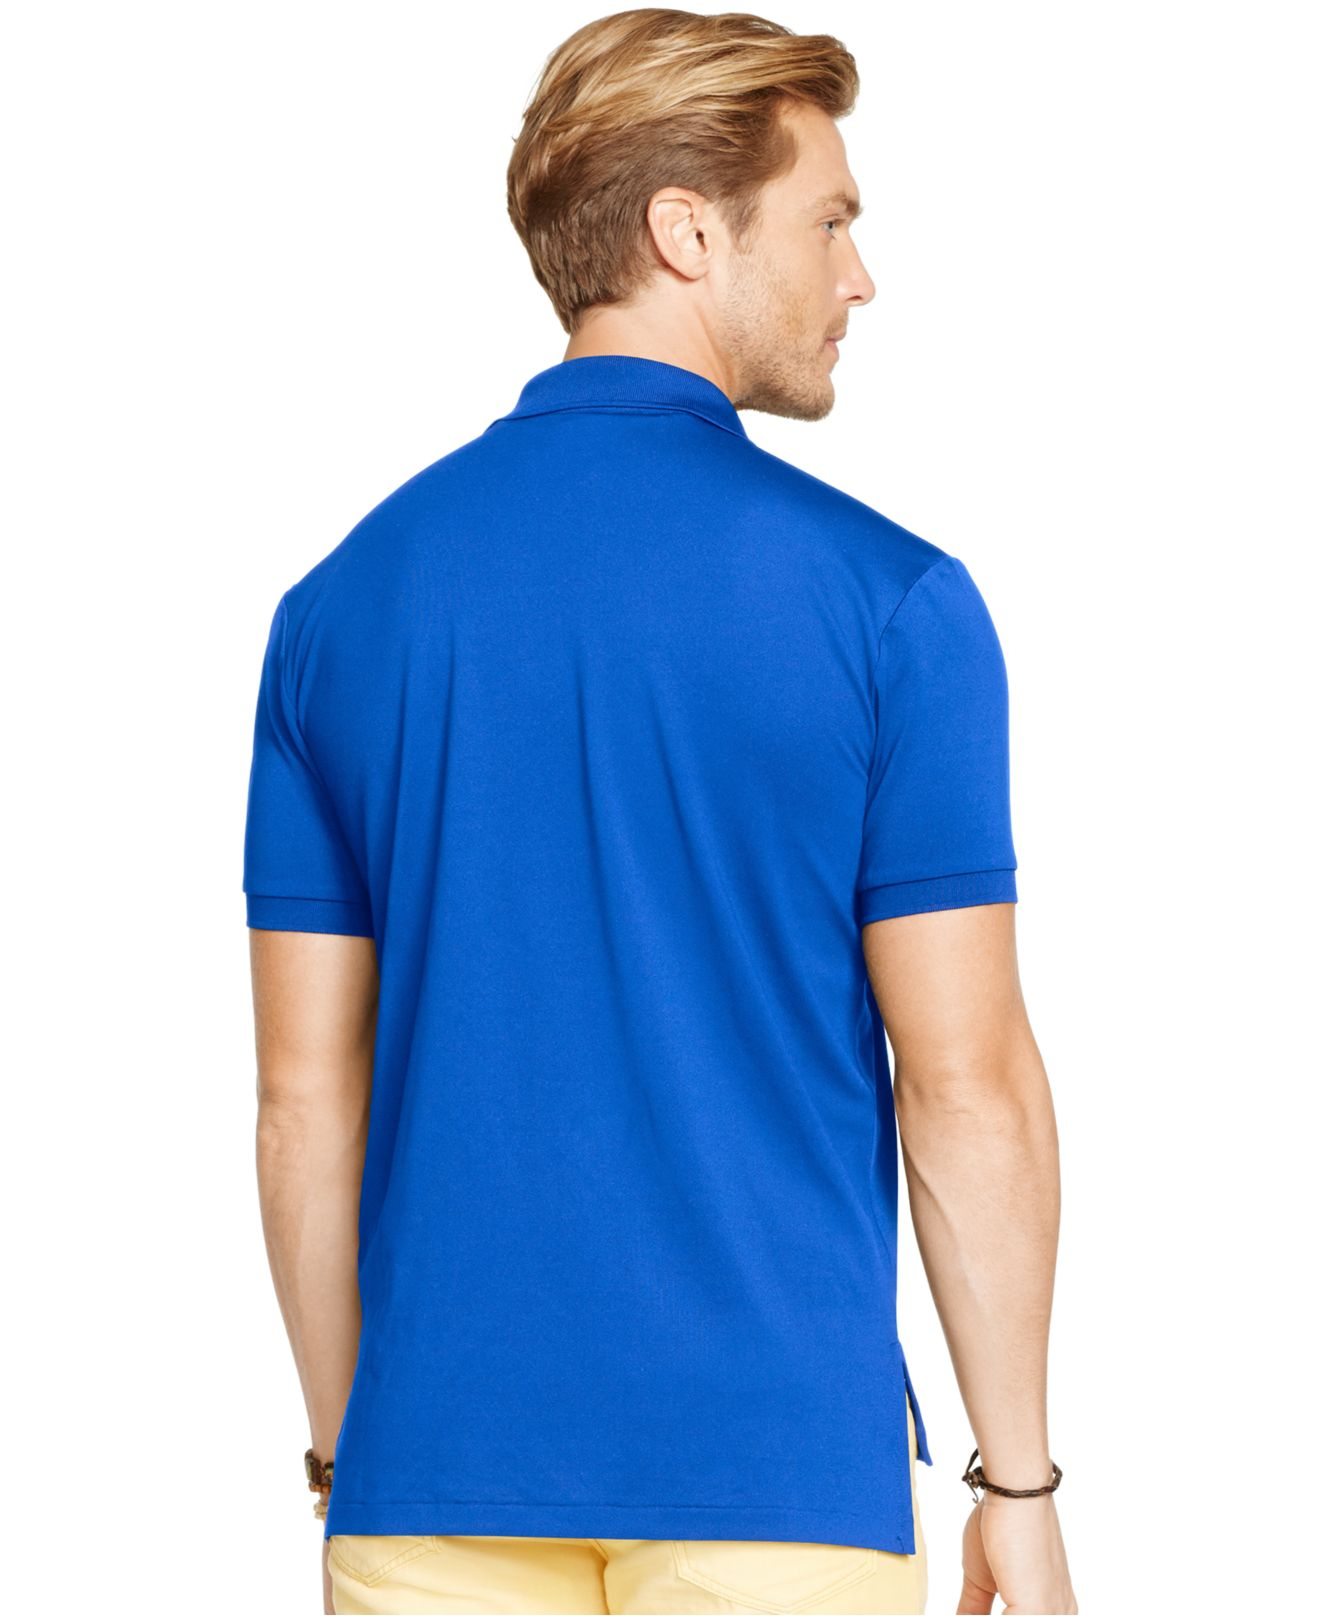 lyst polo ralph lauren performance mesh polo shirt in blue for men. Black Bedroom Furniture Sets. Home Design Ideas